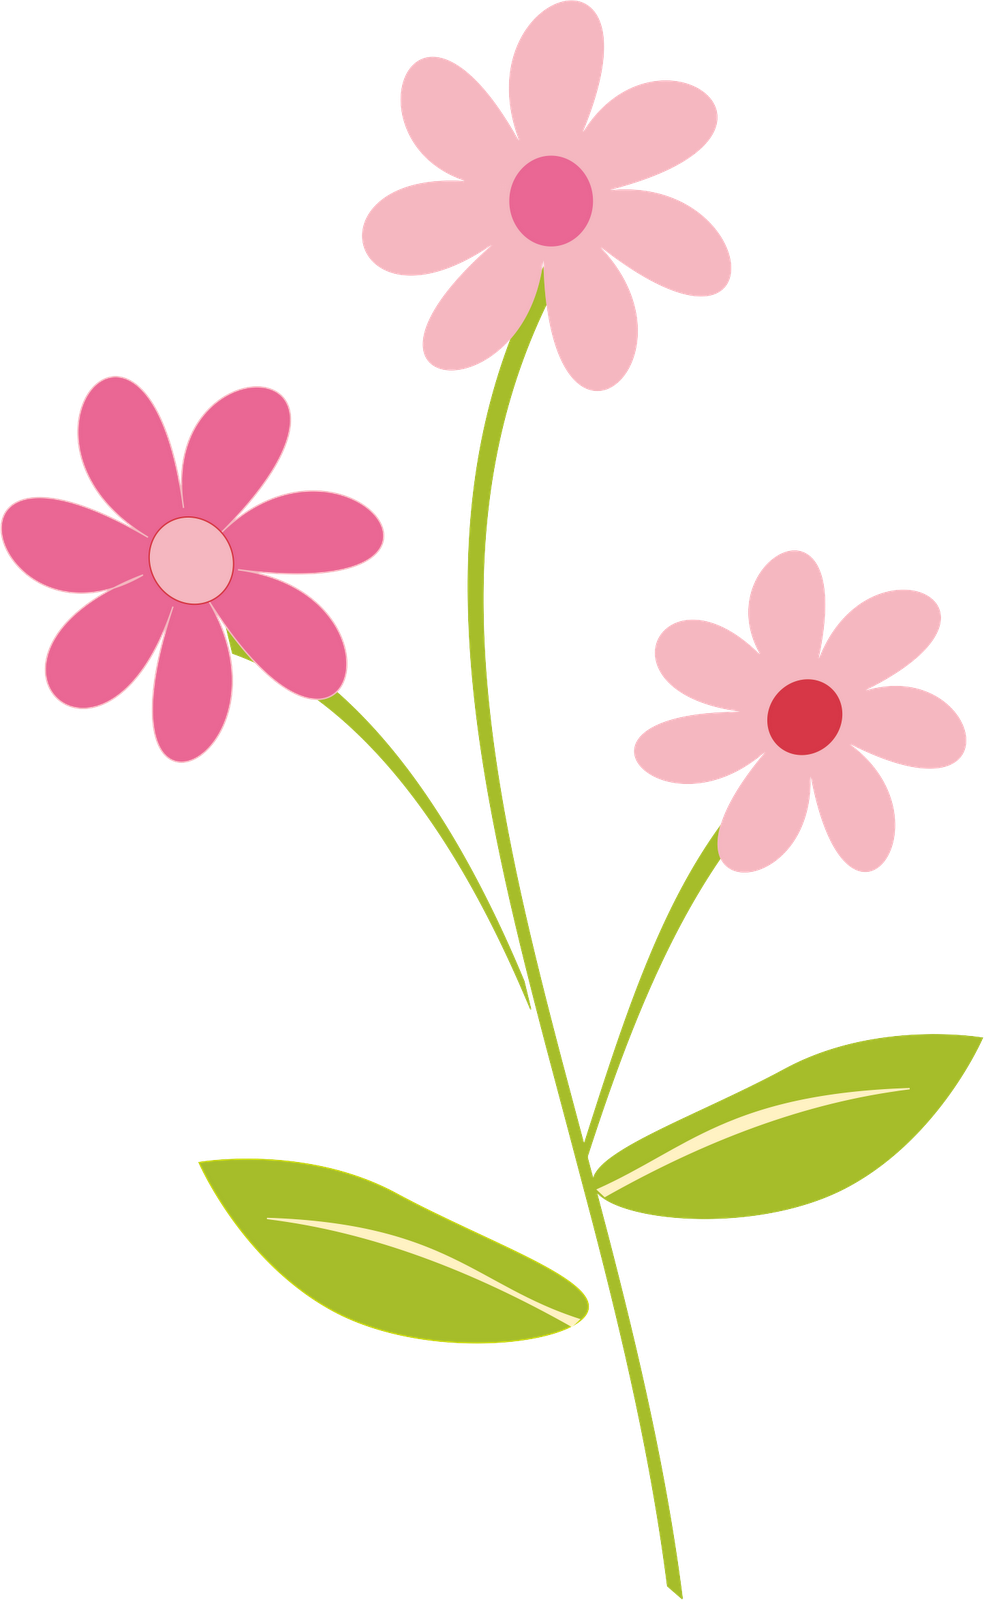 Flowers Clipart Png - Pin by Elham Mahdi on png. | Flowers, Clip art, Flower clipart